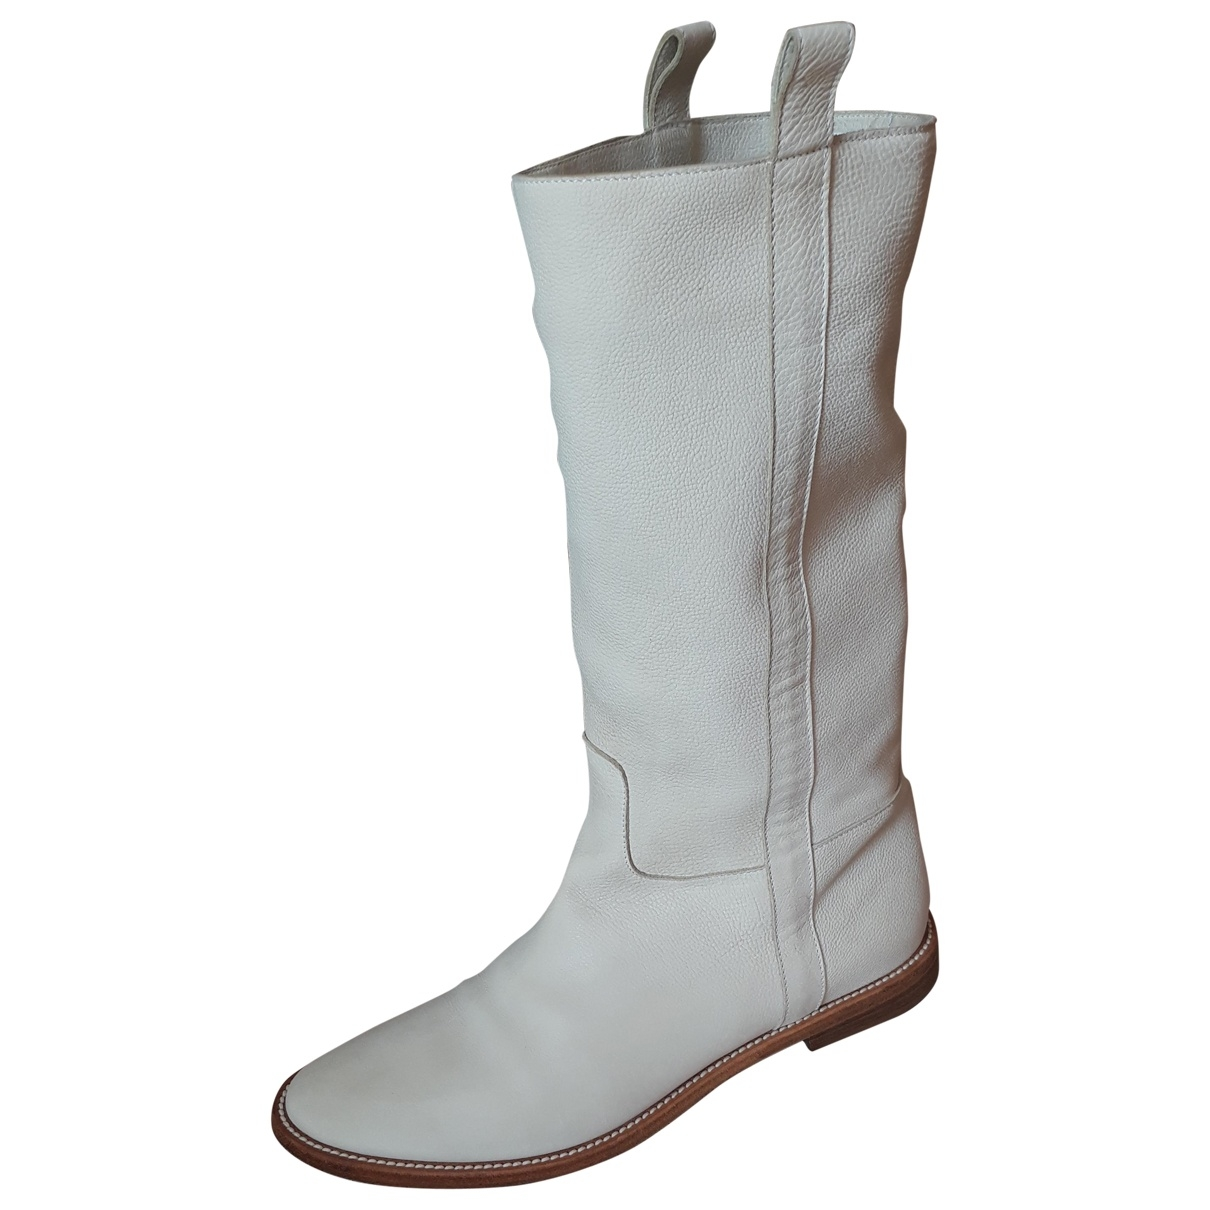 Sartore \N Beige Pony-style calfskin Boots for Women 37 EU